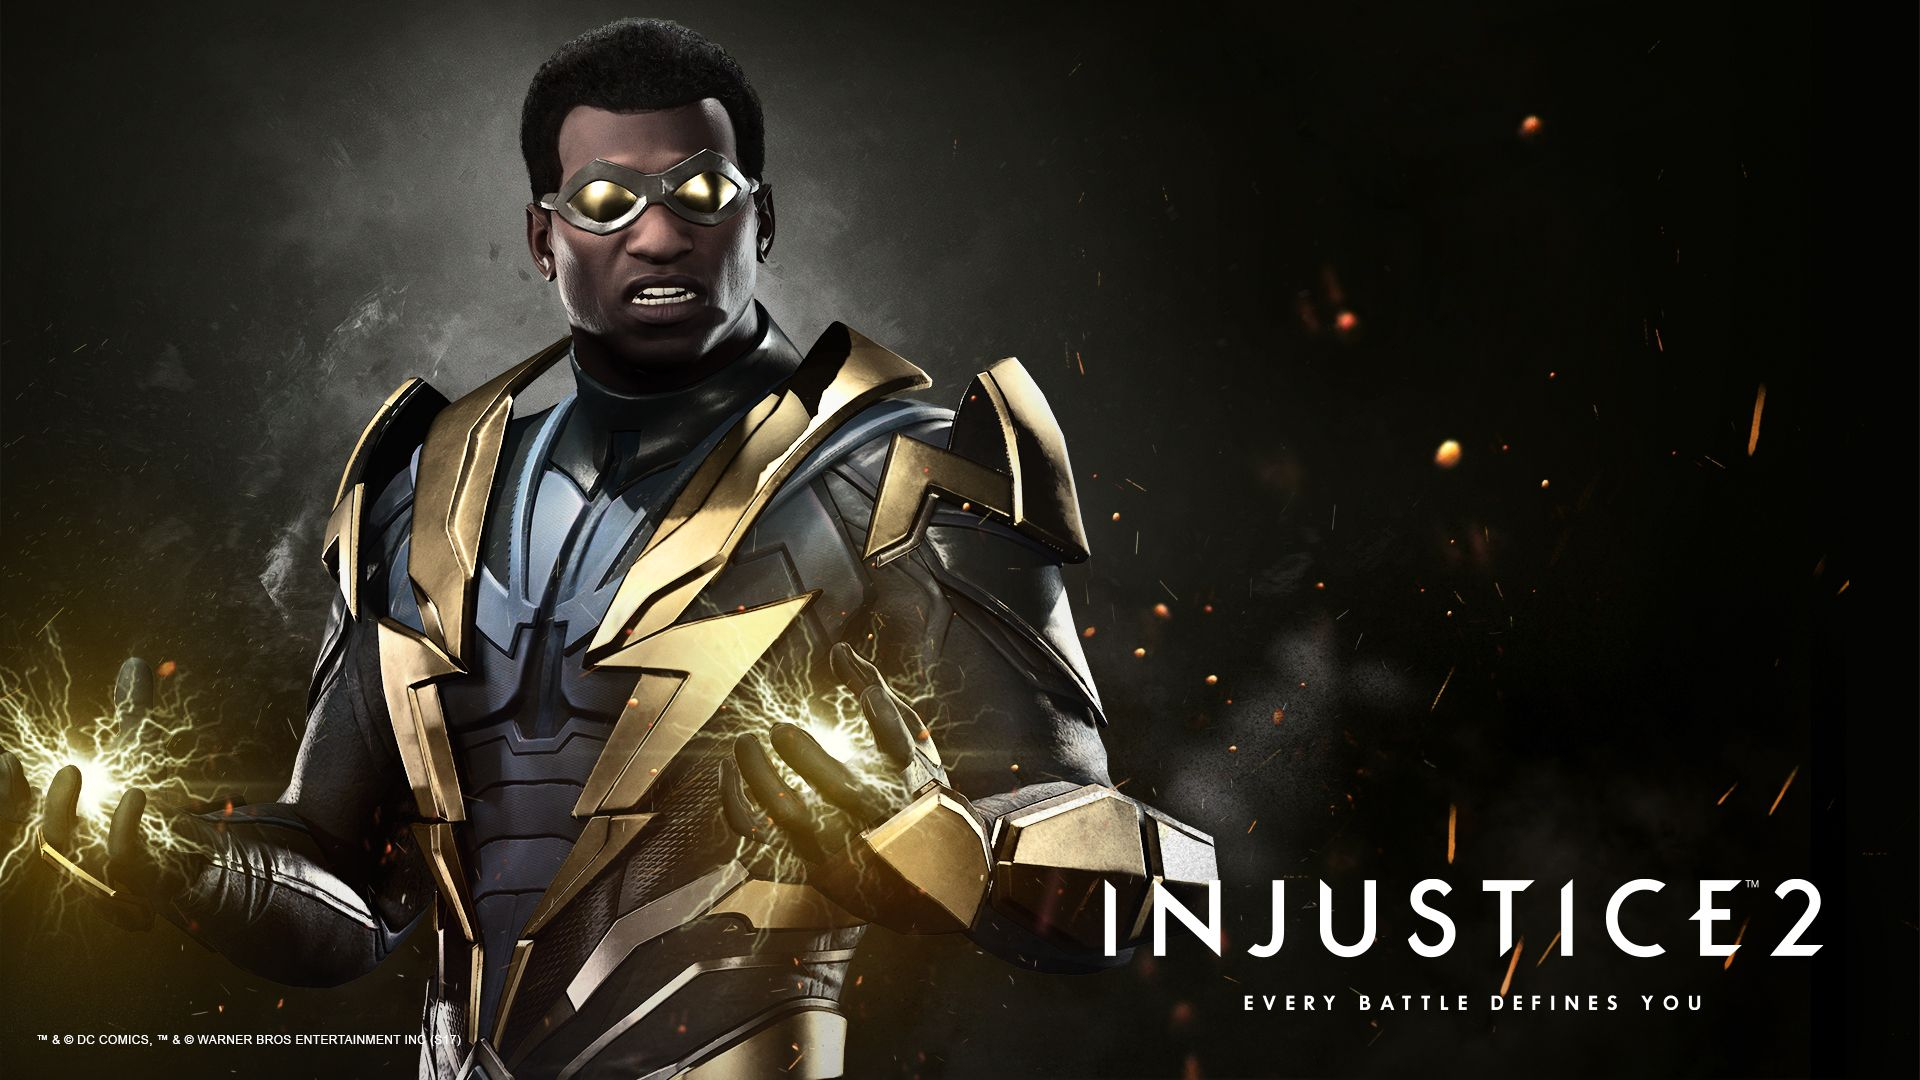 Download Wallpaper Movie Action - Injustice2-BLACKLIGHTNING-wallpaper-1920x1080-99  Picture_428070.jpg